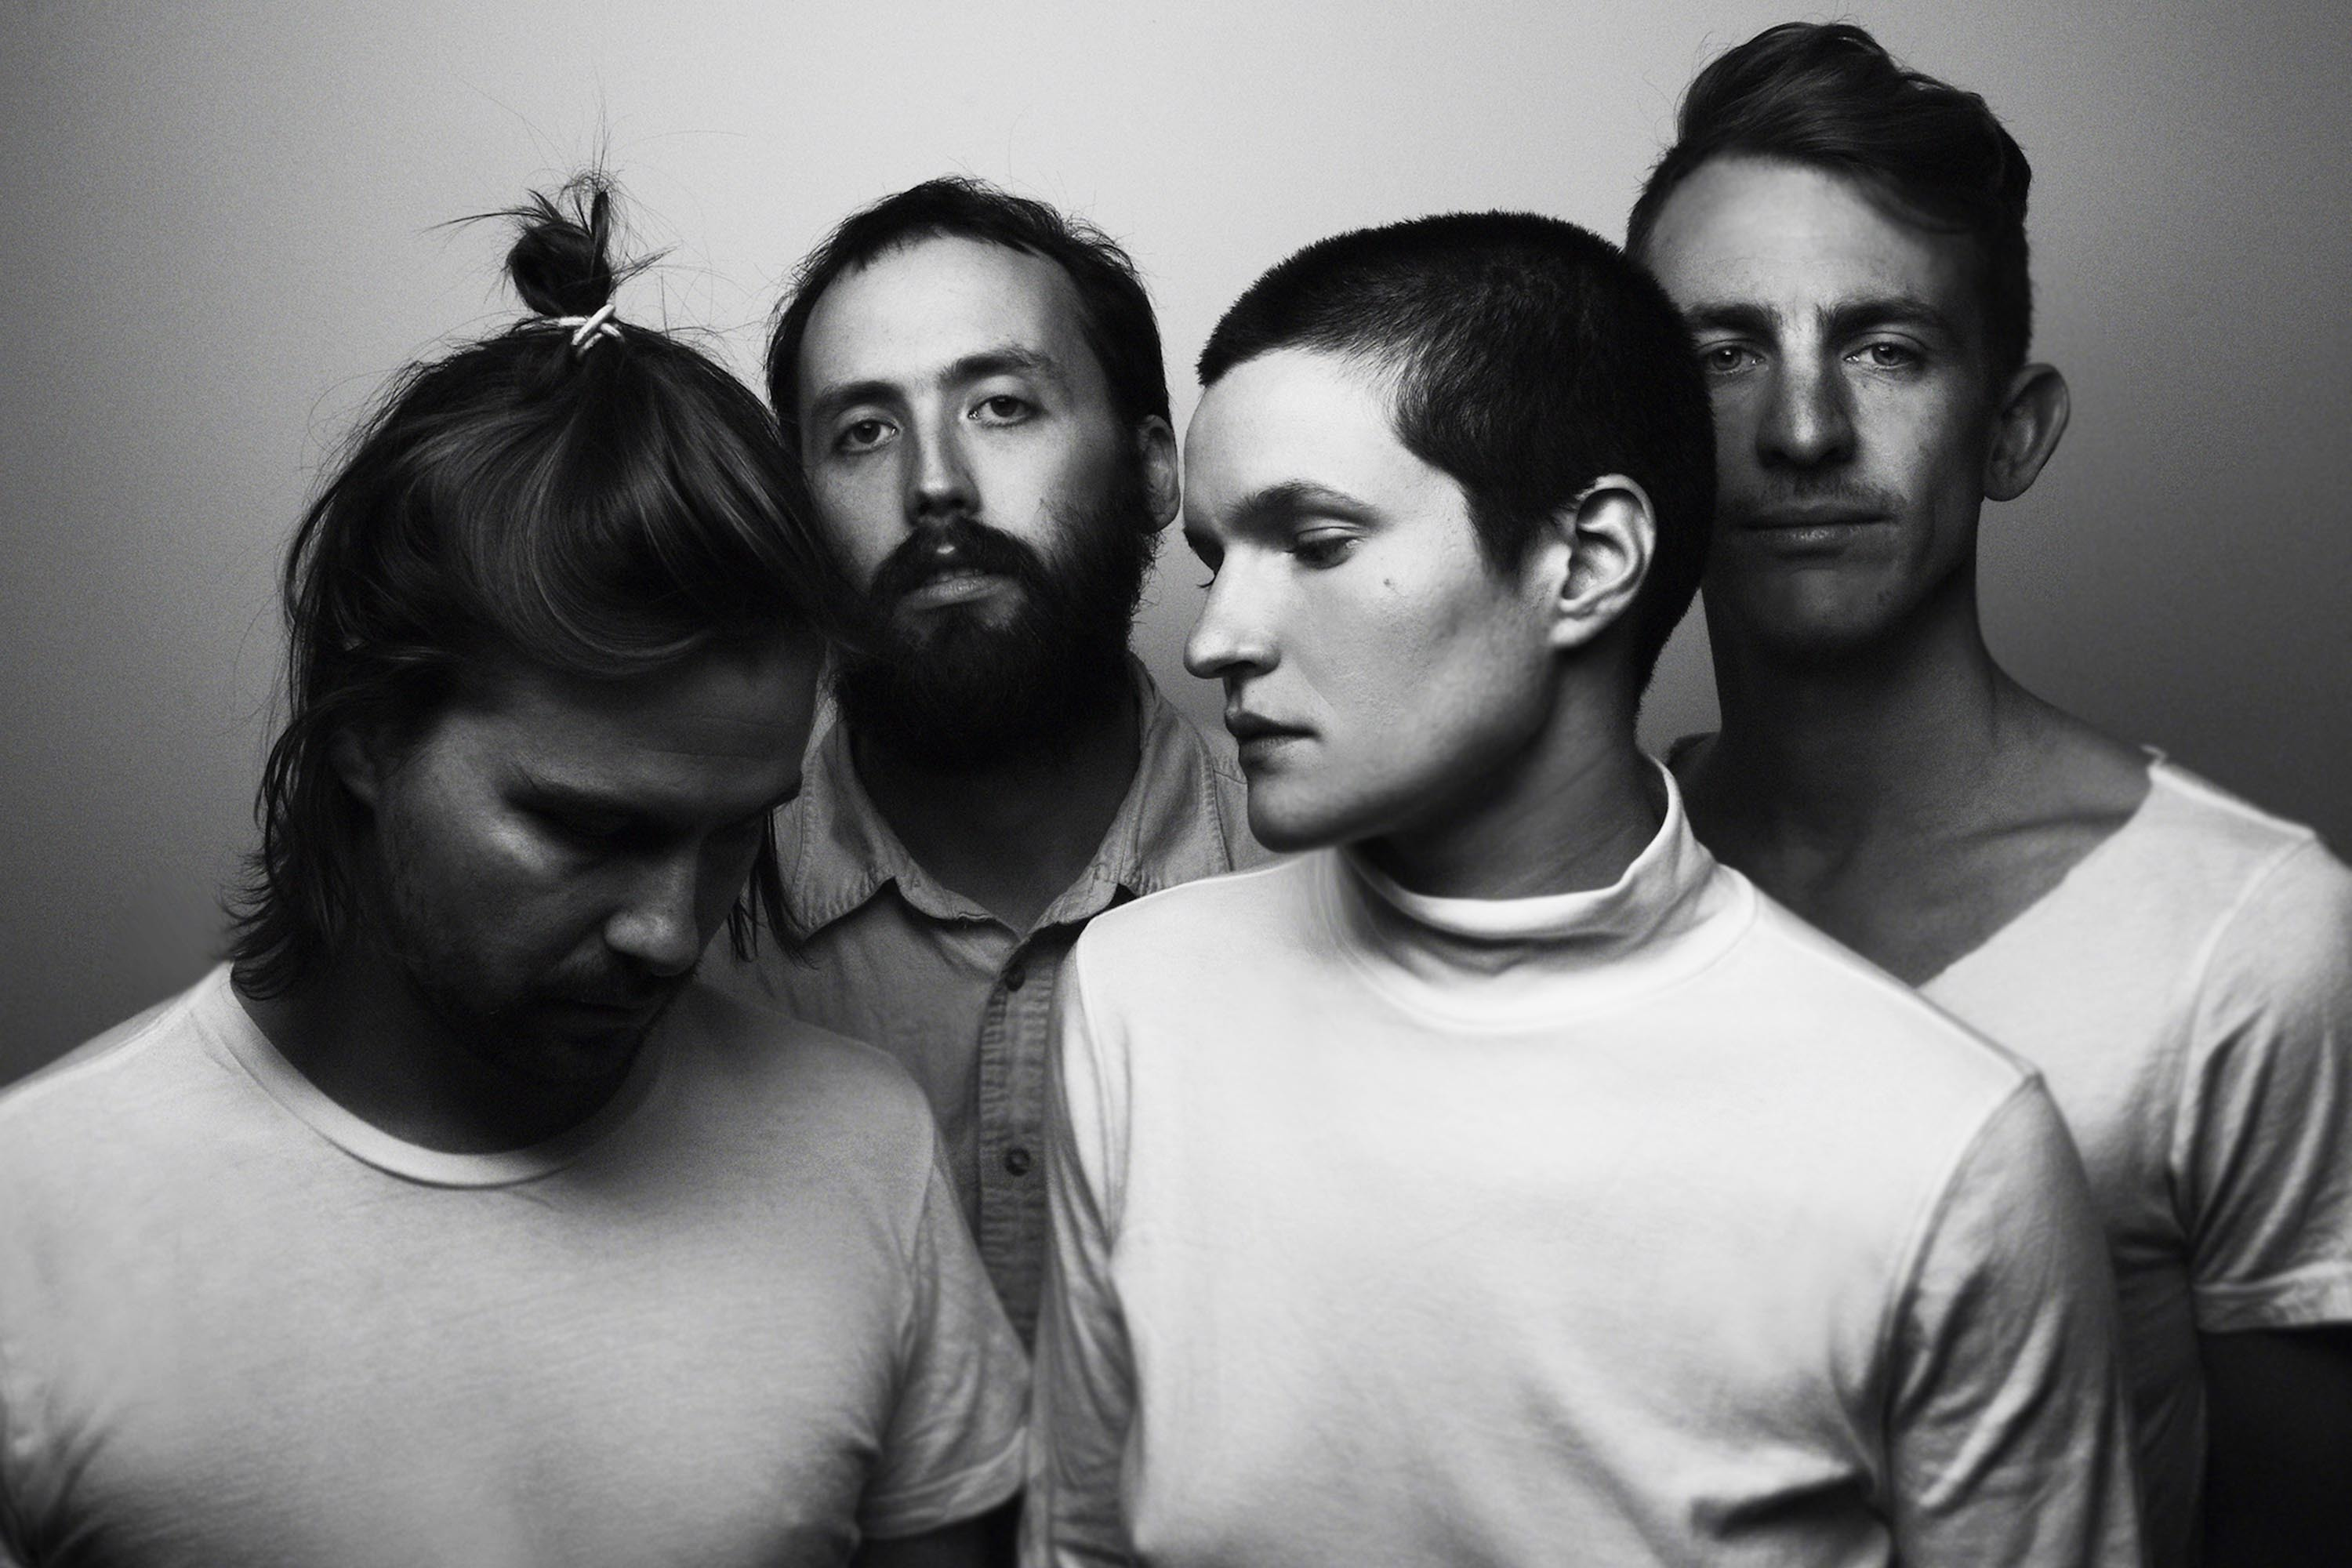 Big Thief are back! New album 'Capacity' is out in June